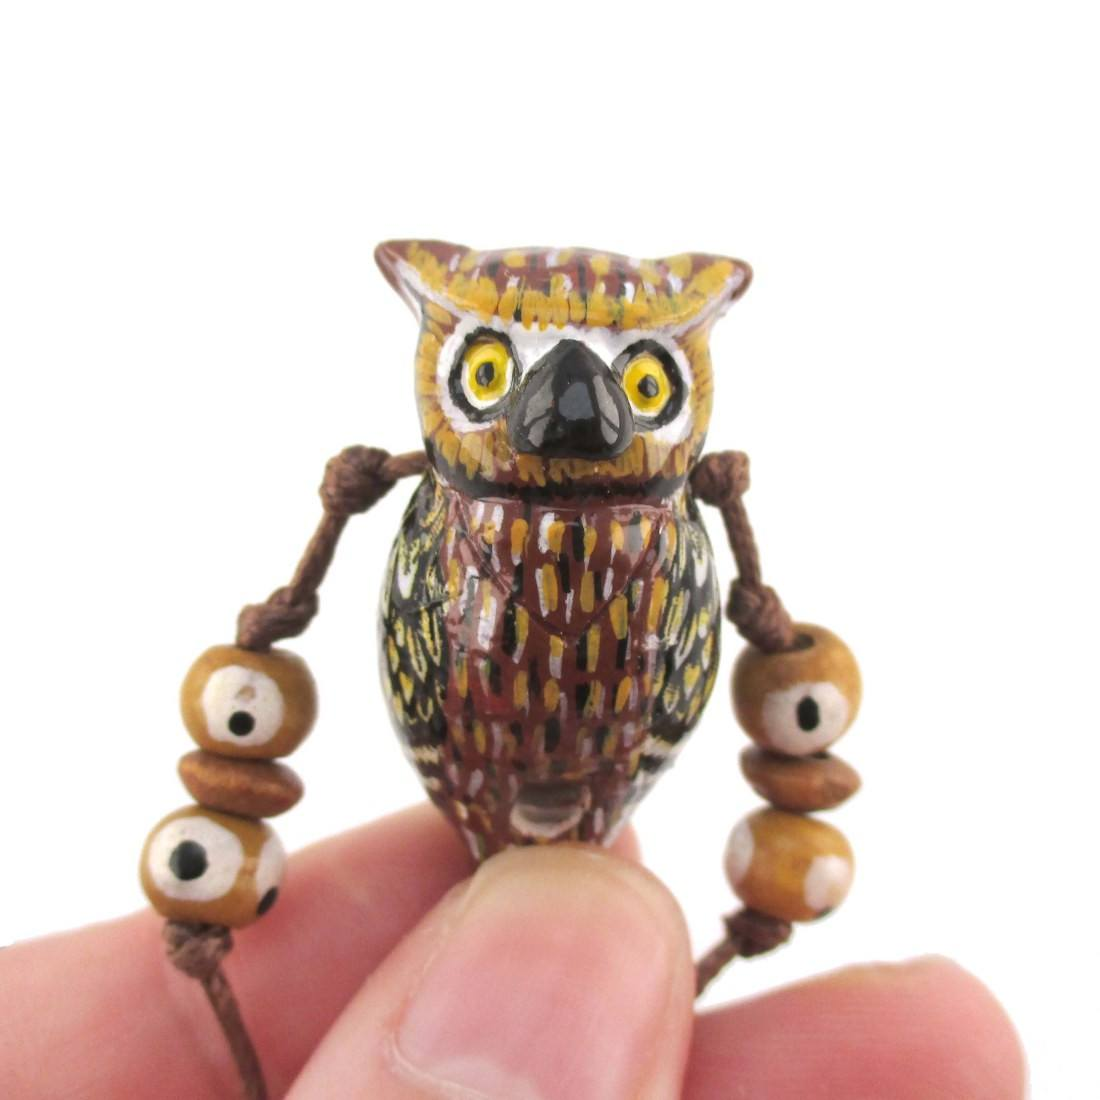 Handmade Owl Shaped Hand Painted Bird Whistle Pendant Necklace